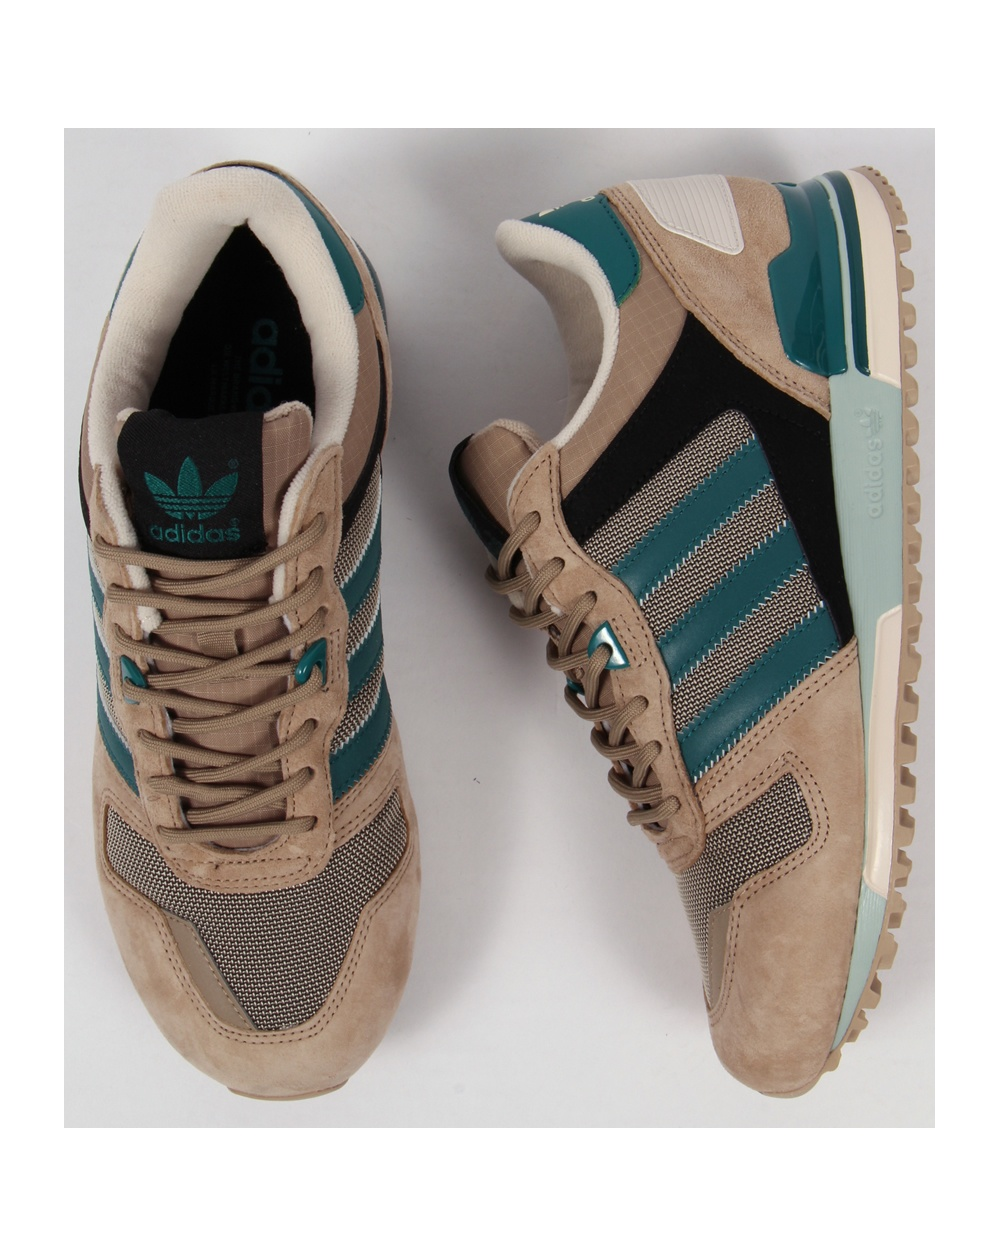 discount shop outlet online 100% quality Adidas Zx 700 Trainers Hemp/emerald/black